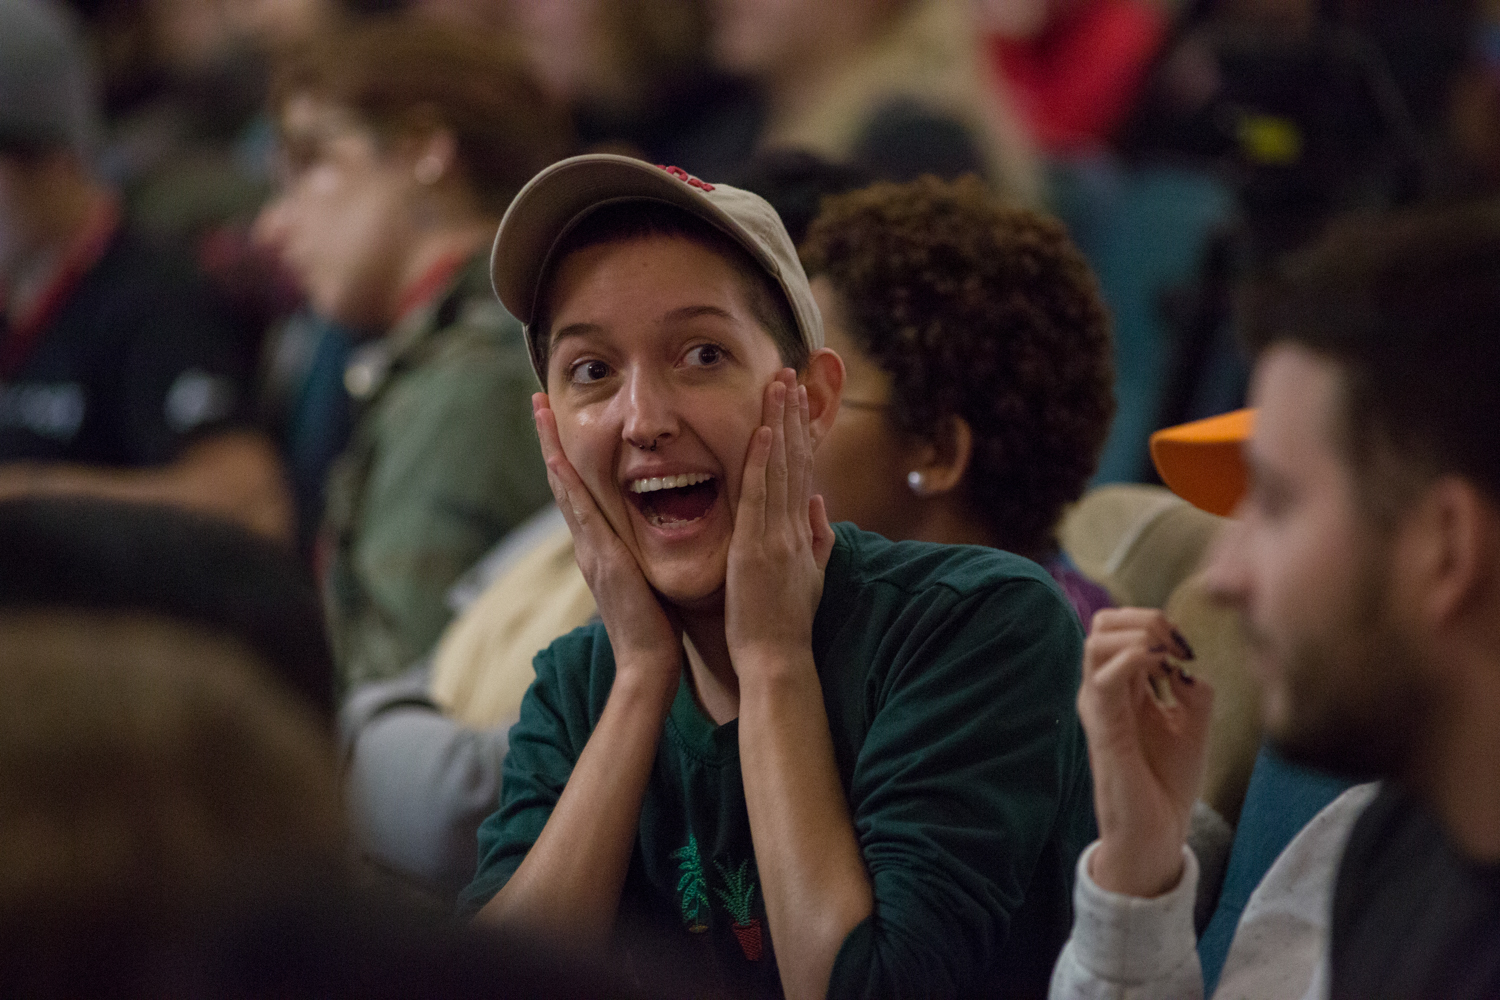 Lindsey Fourt (CFA '18) reacts during the debate.